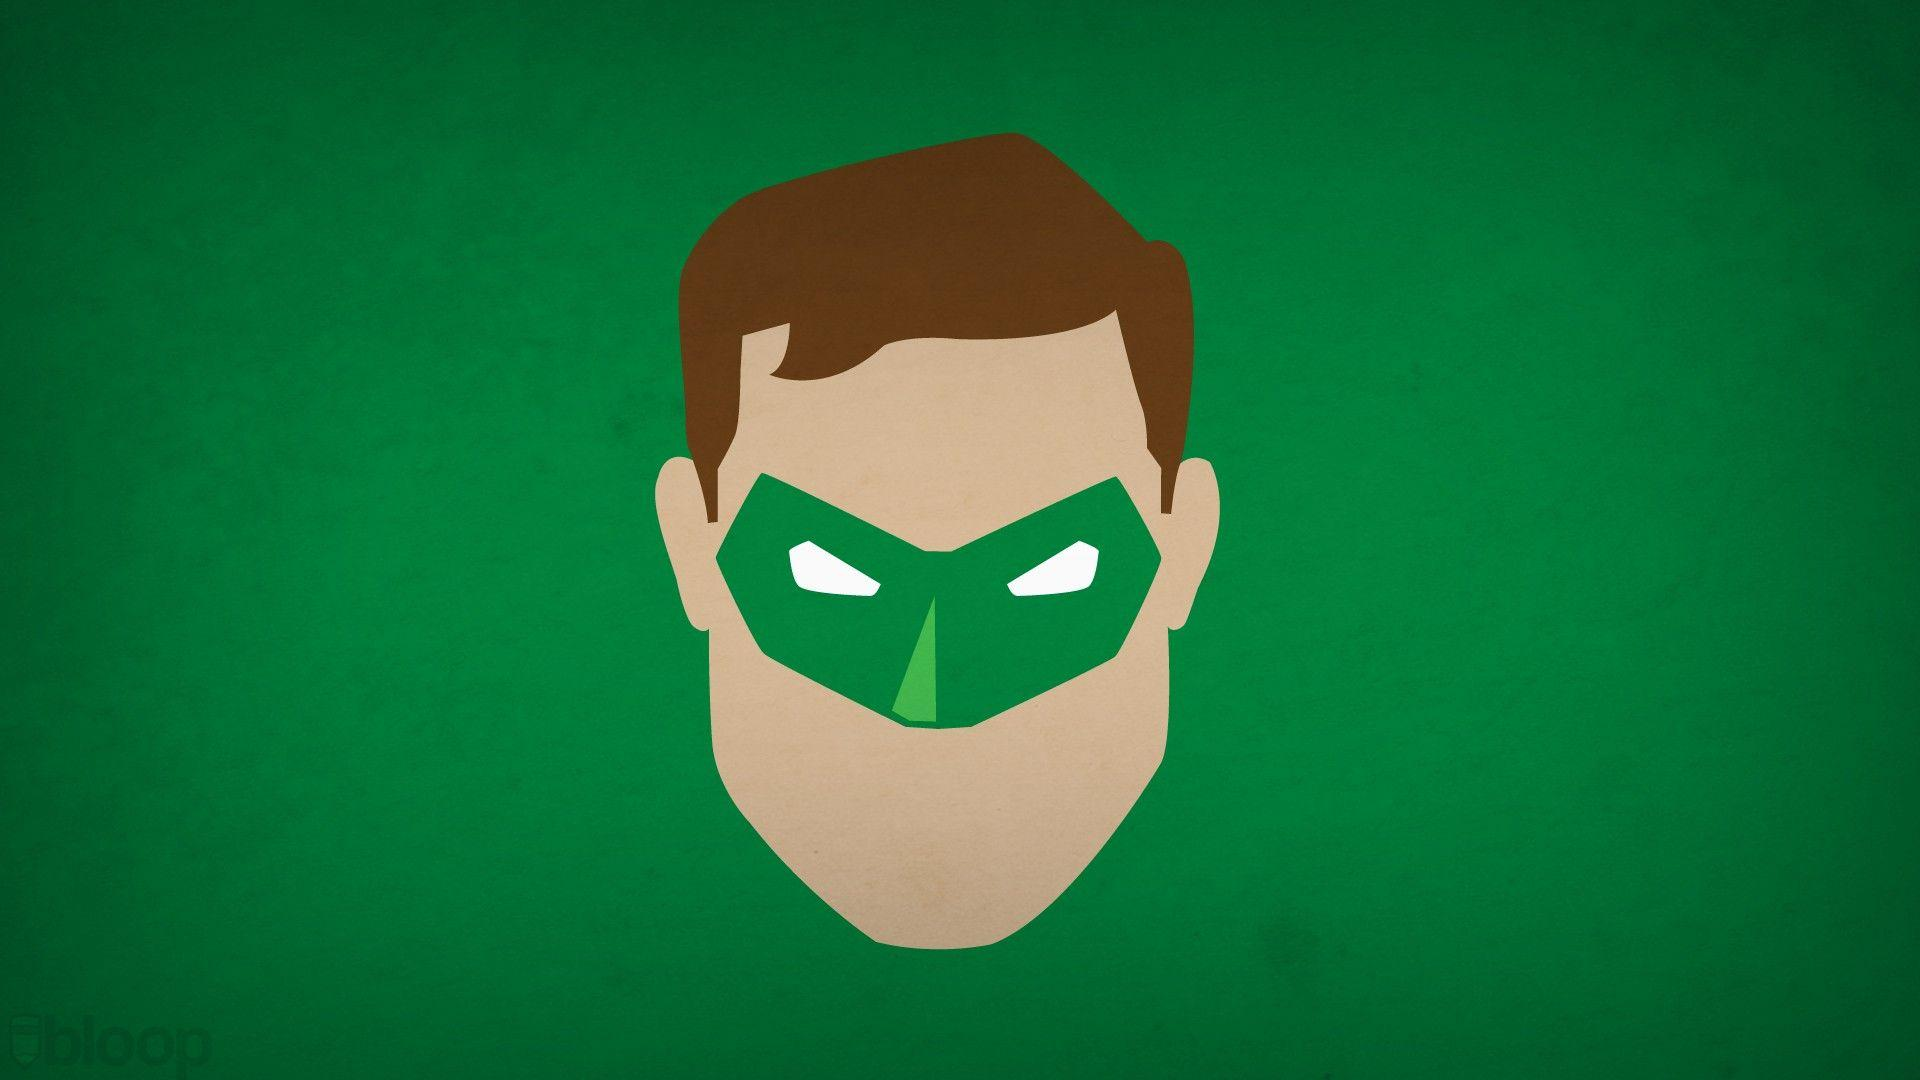 Download Green Lantern Wallpapers 1920x1080